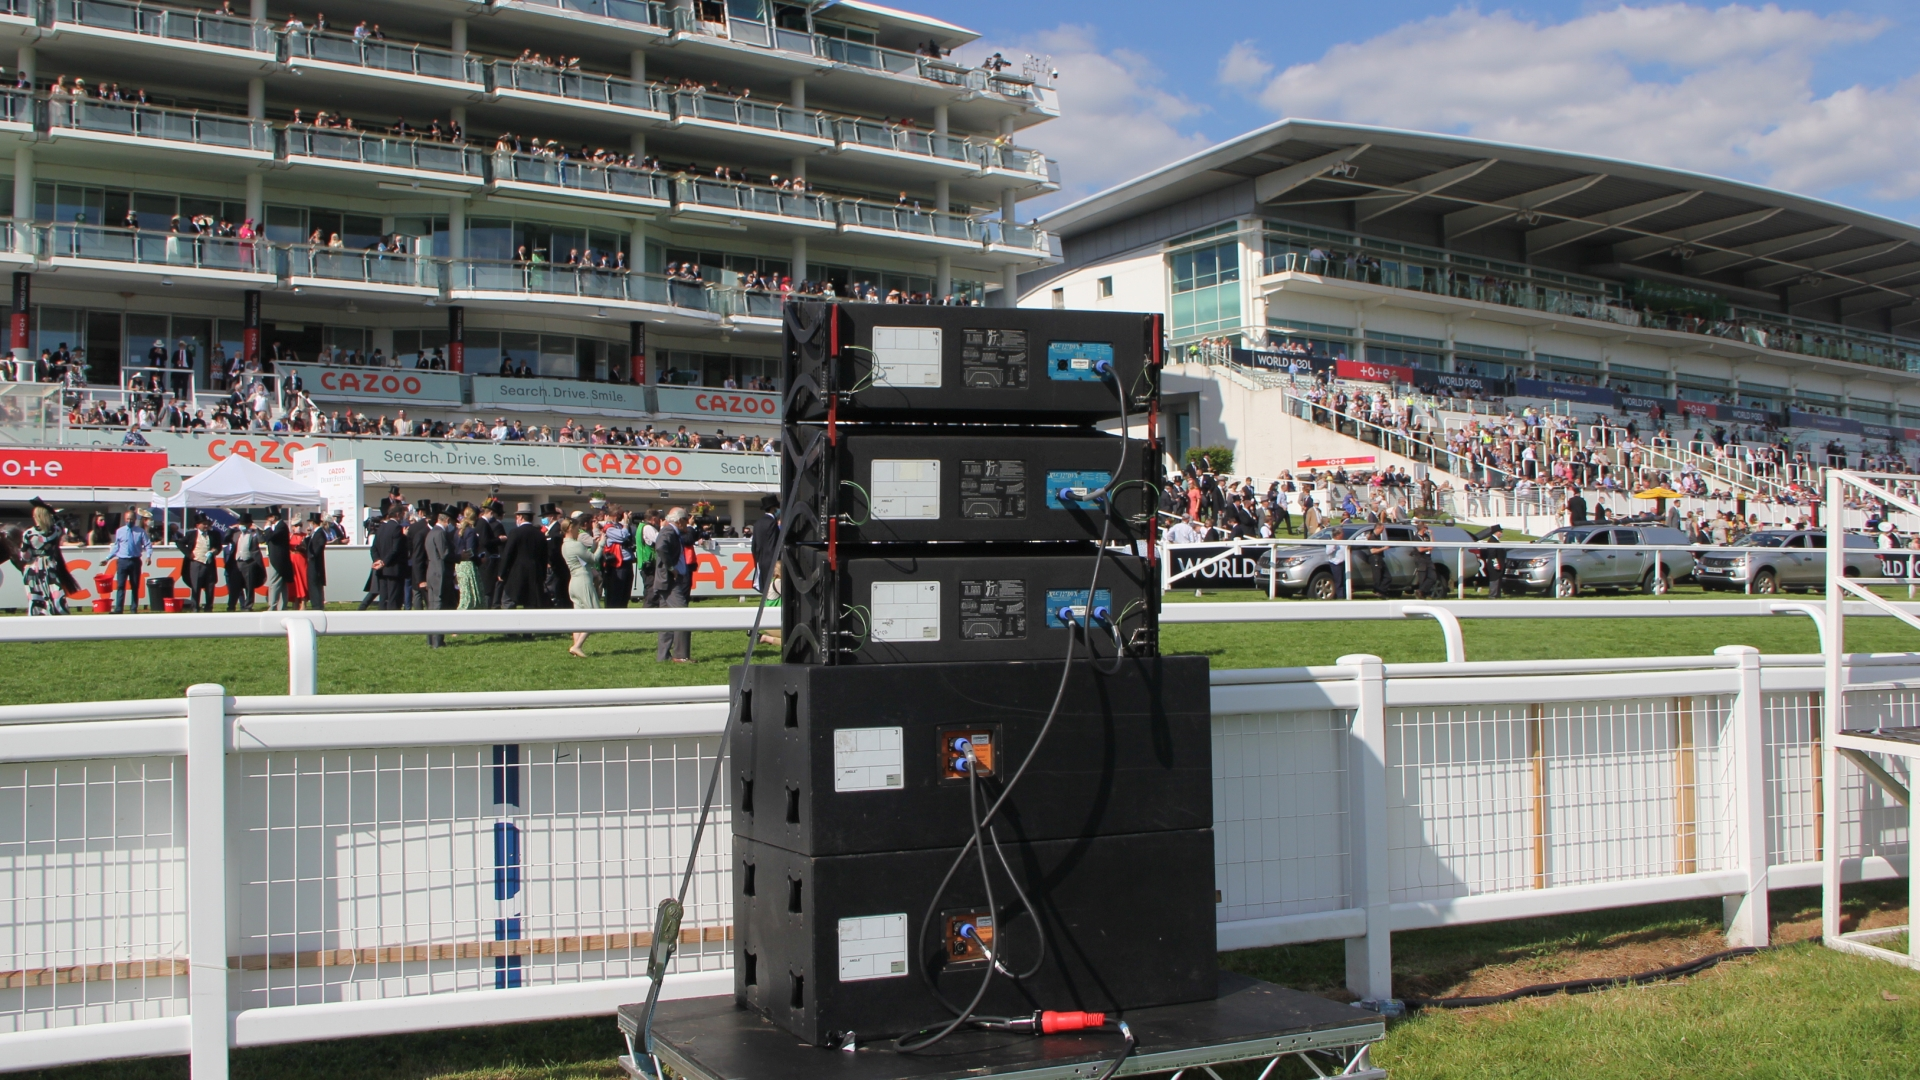 Epsom Derby 2021 Opening Show PA